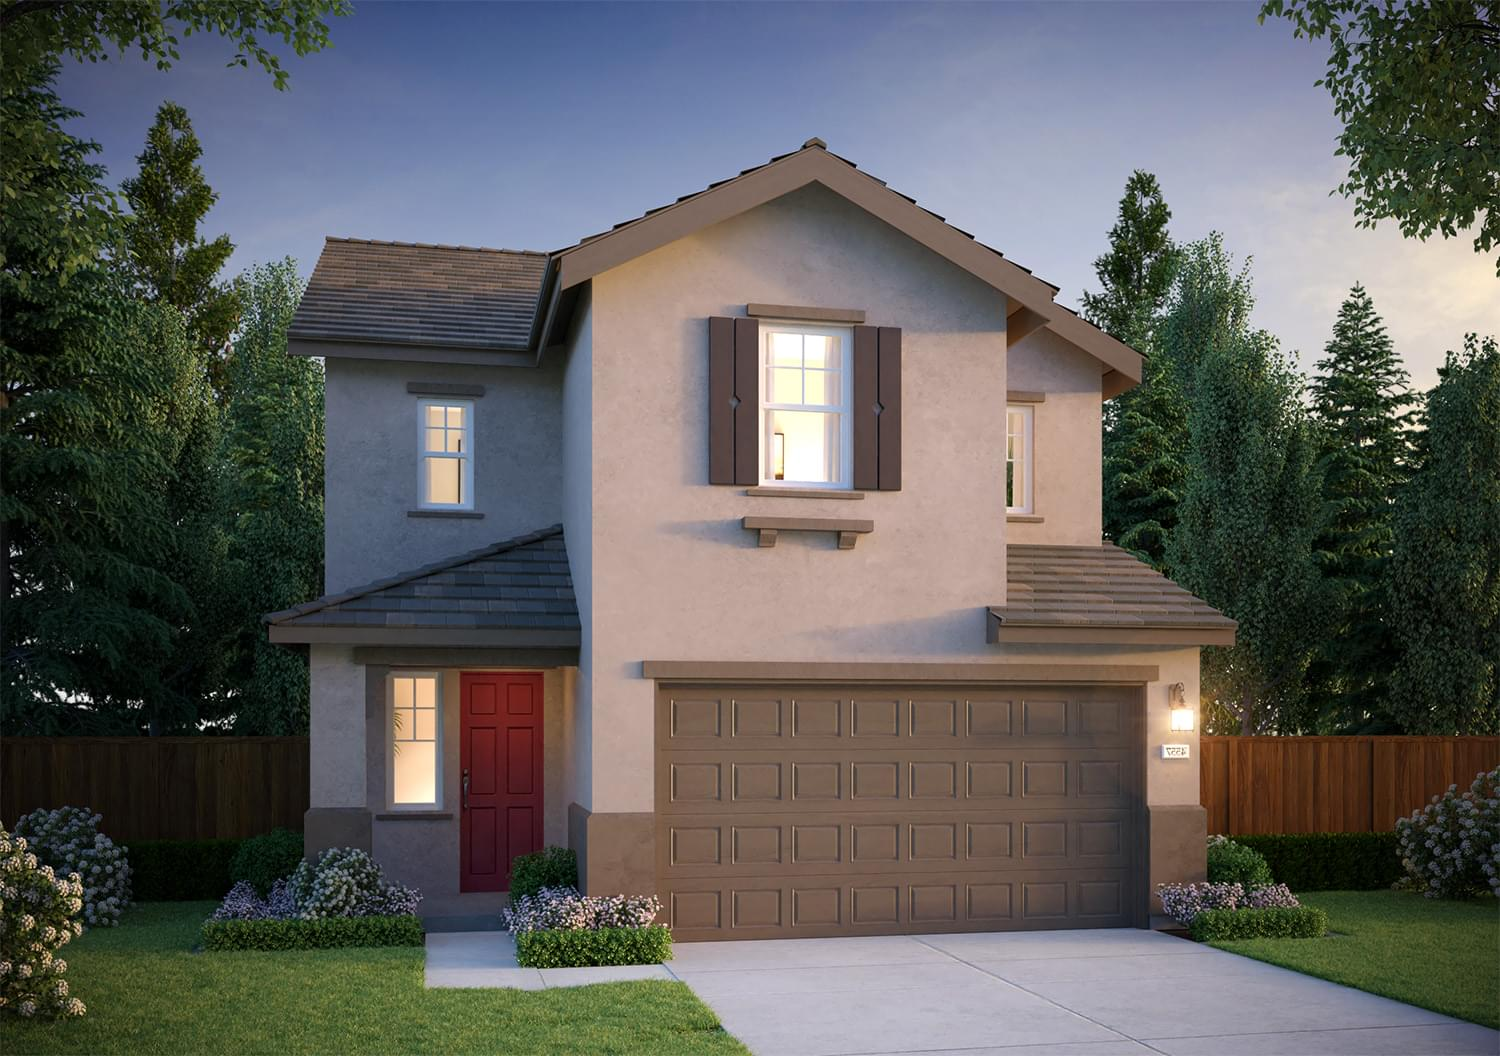 525 Shearwater Street in Hollister, CA by DeNova Homes